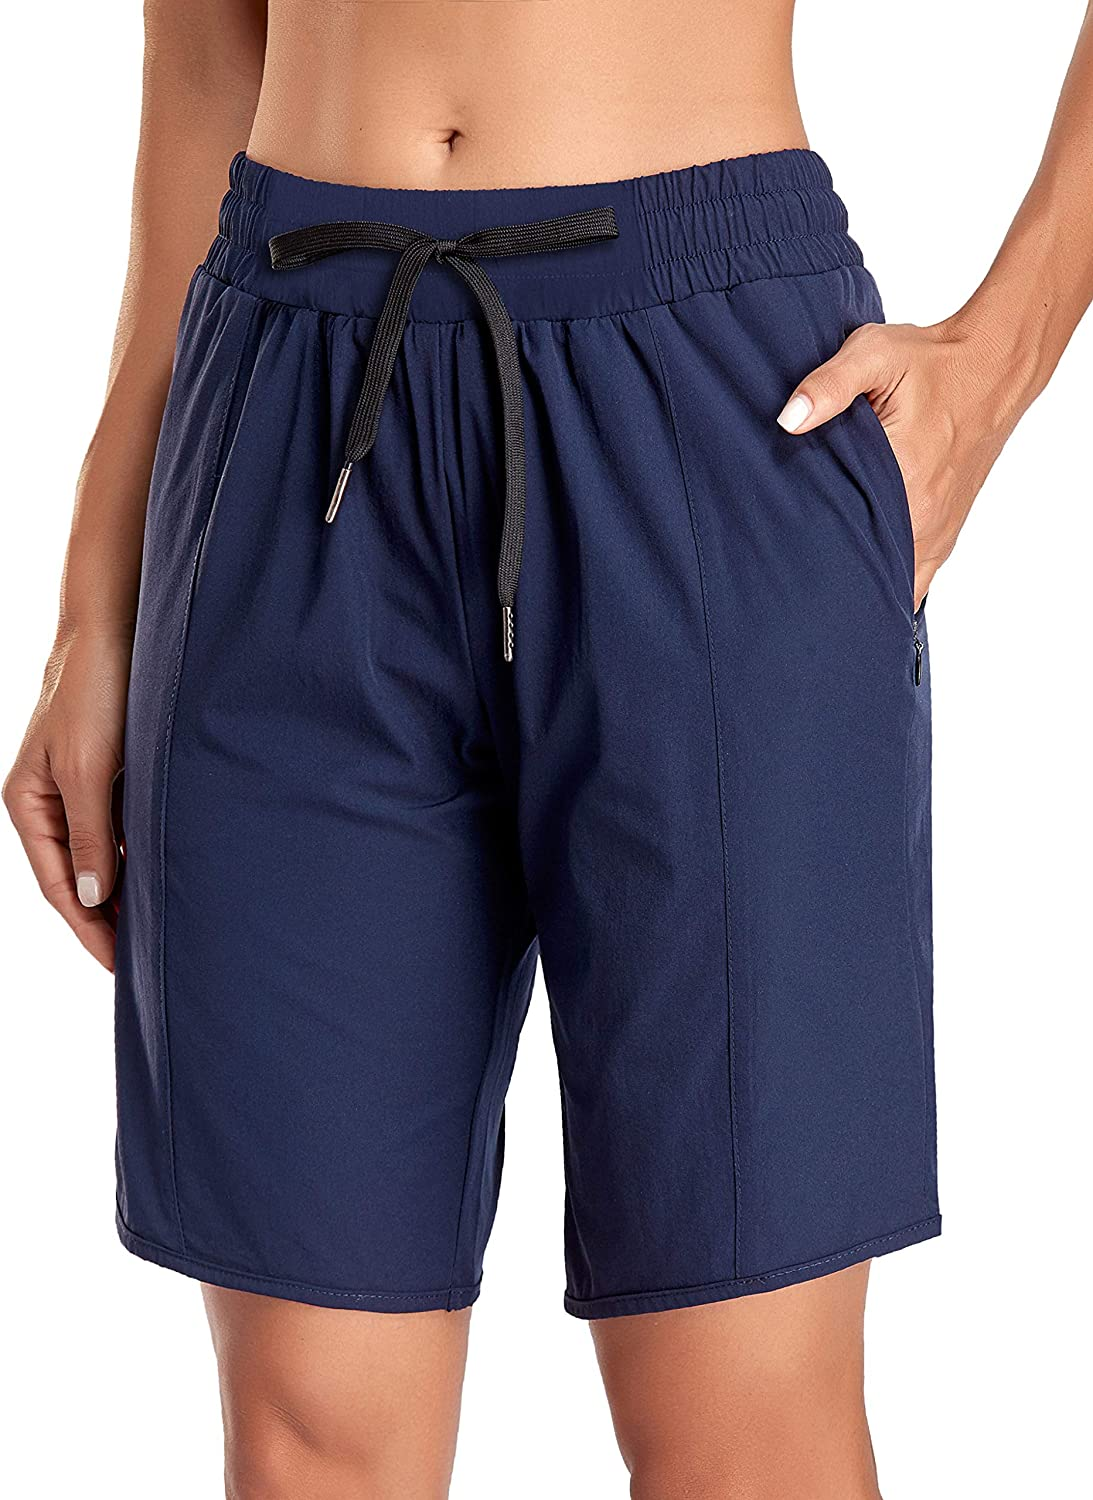 Kimmery Workout Shorts for Women Pockets Adjus Zipper Sweat Safety and trust with Max 89% OFF